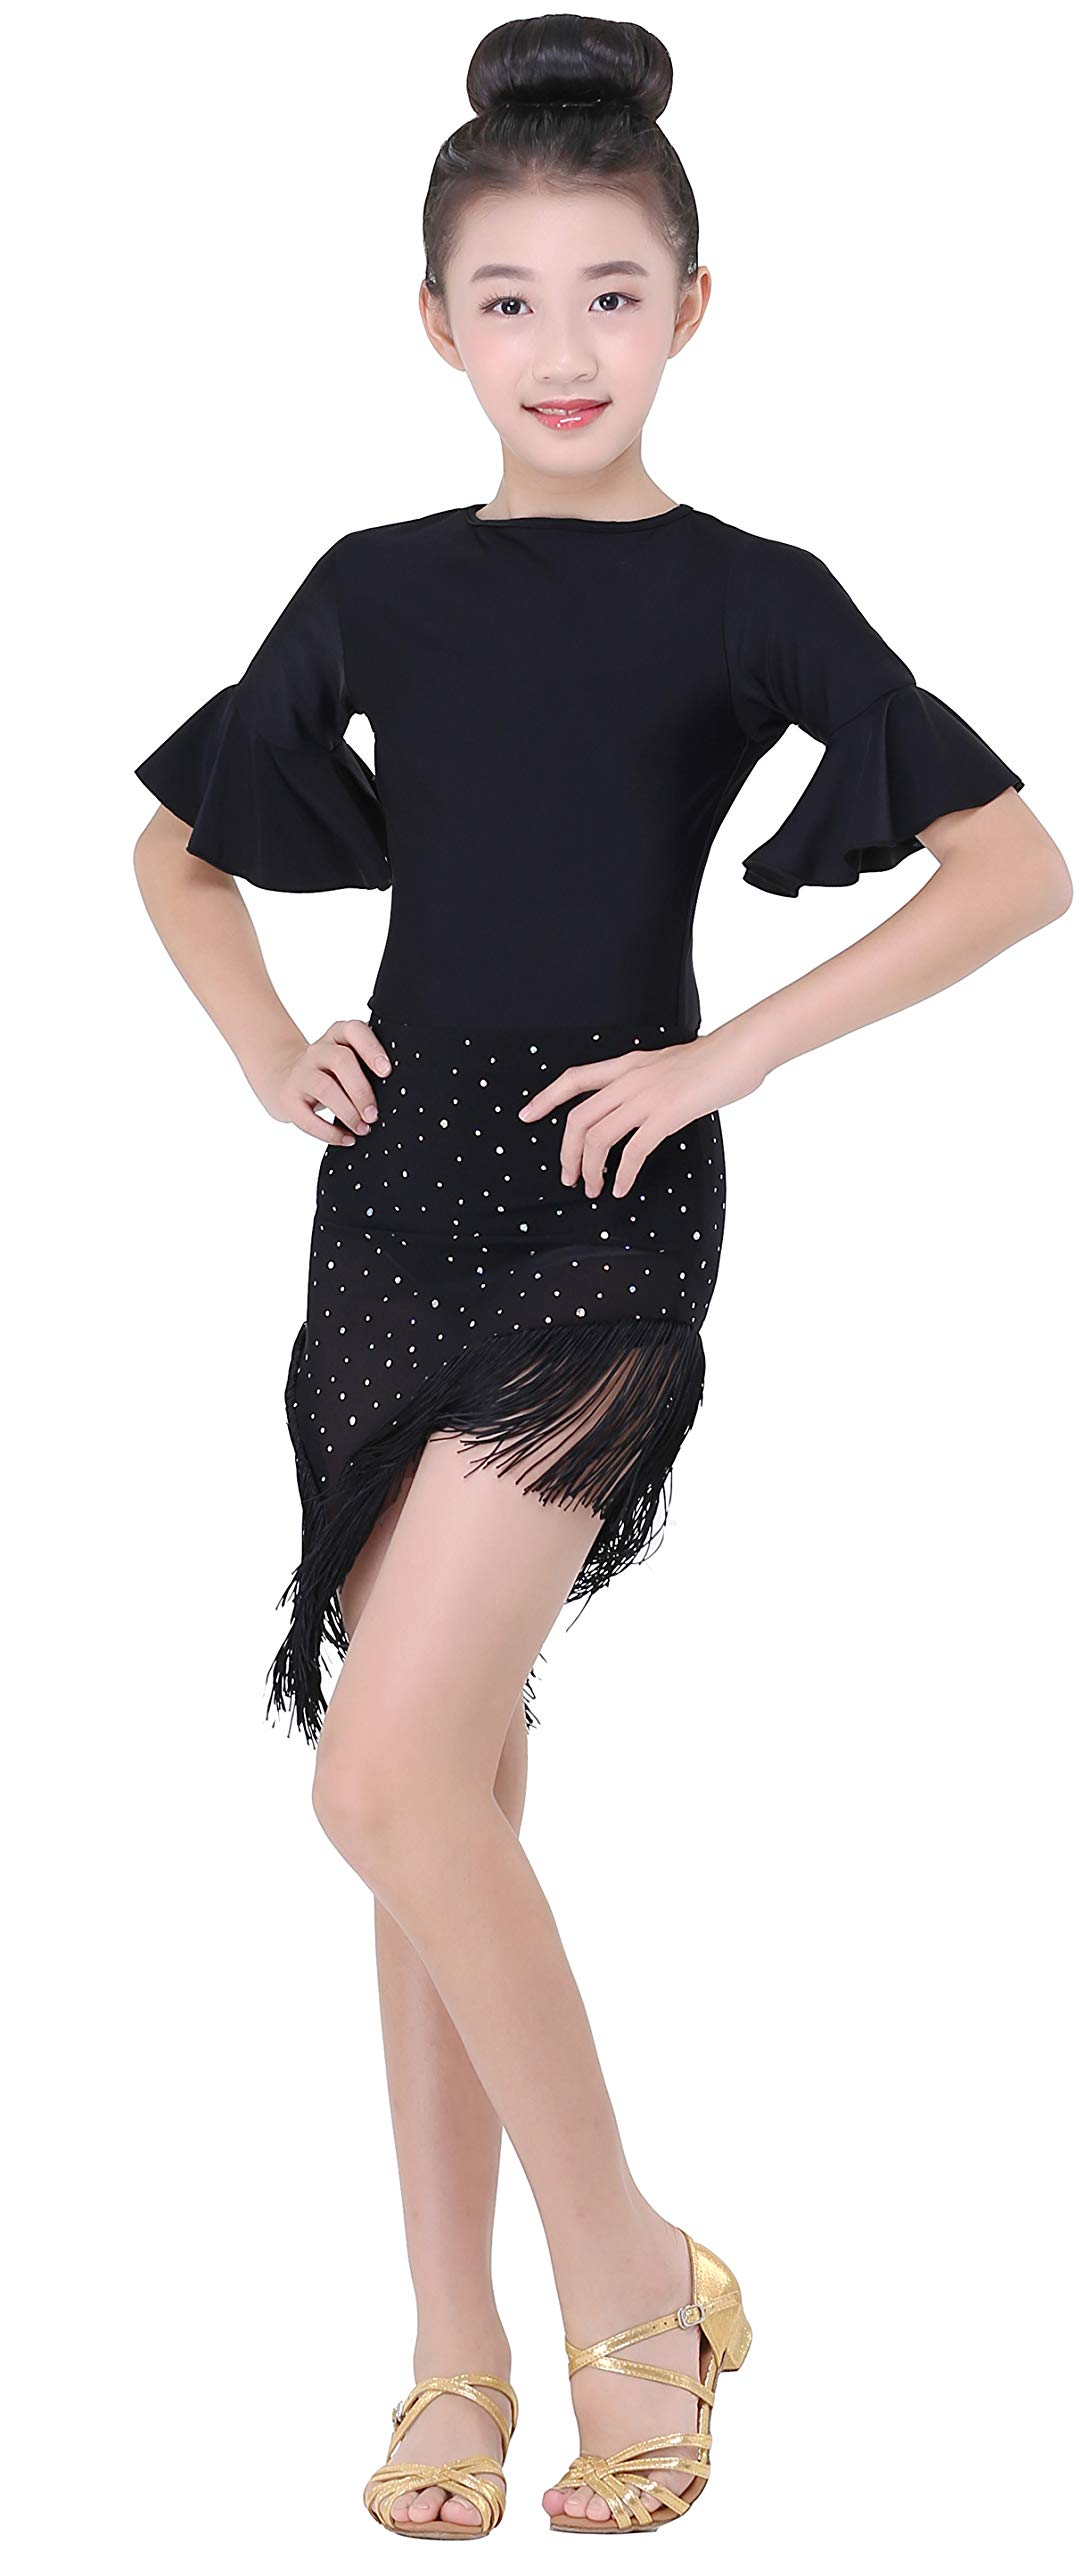 Girls' Shiny Dot Sequin Latin Salsa Smooth Practice Tassel Dance Skirt (Black, XL) by JEZISYMA